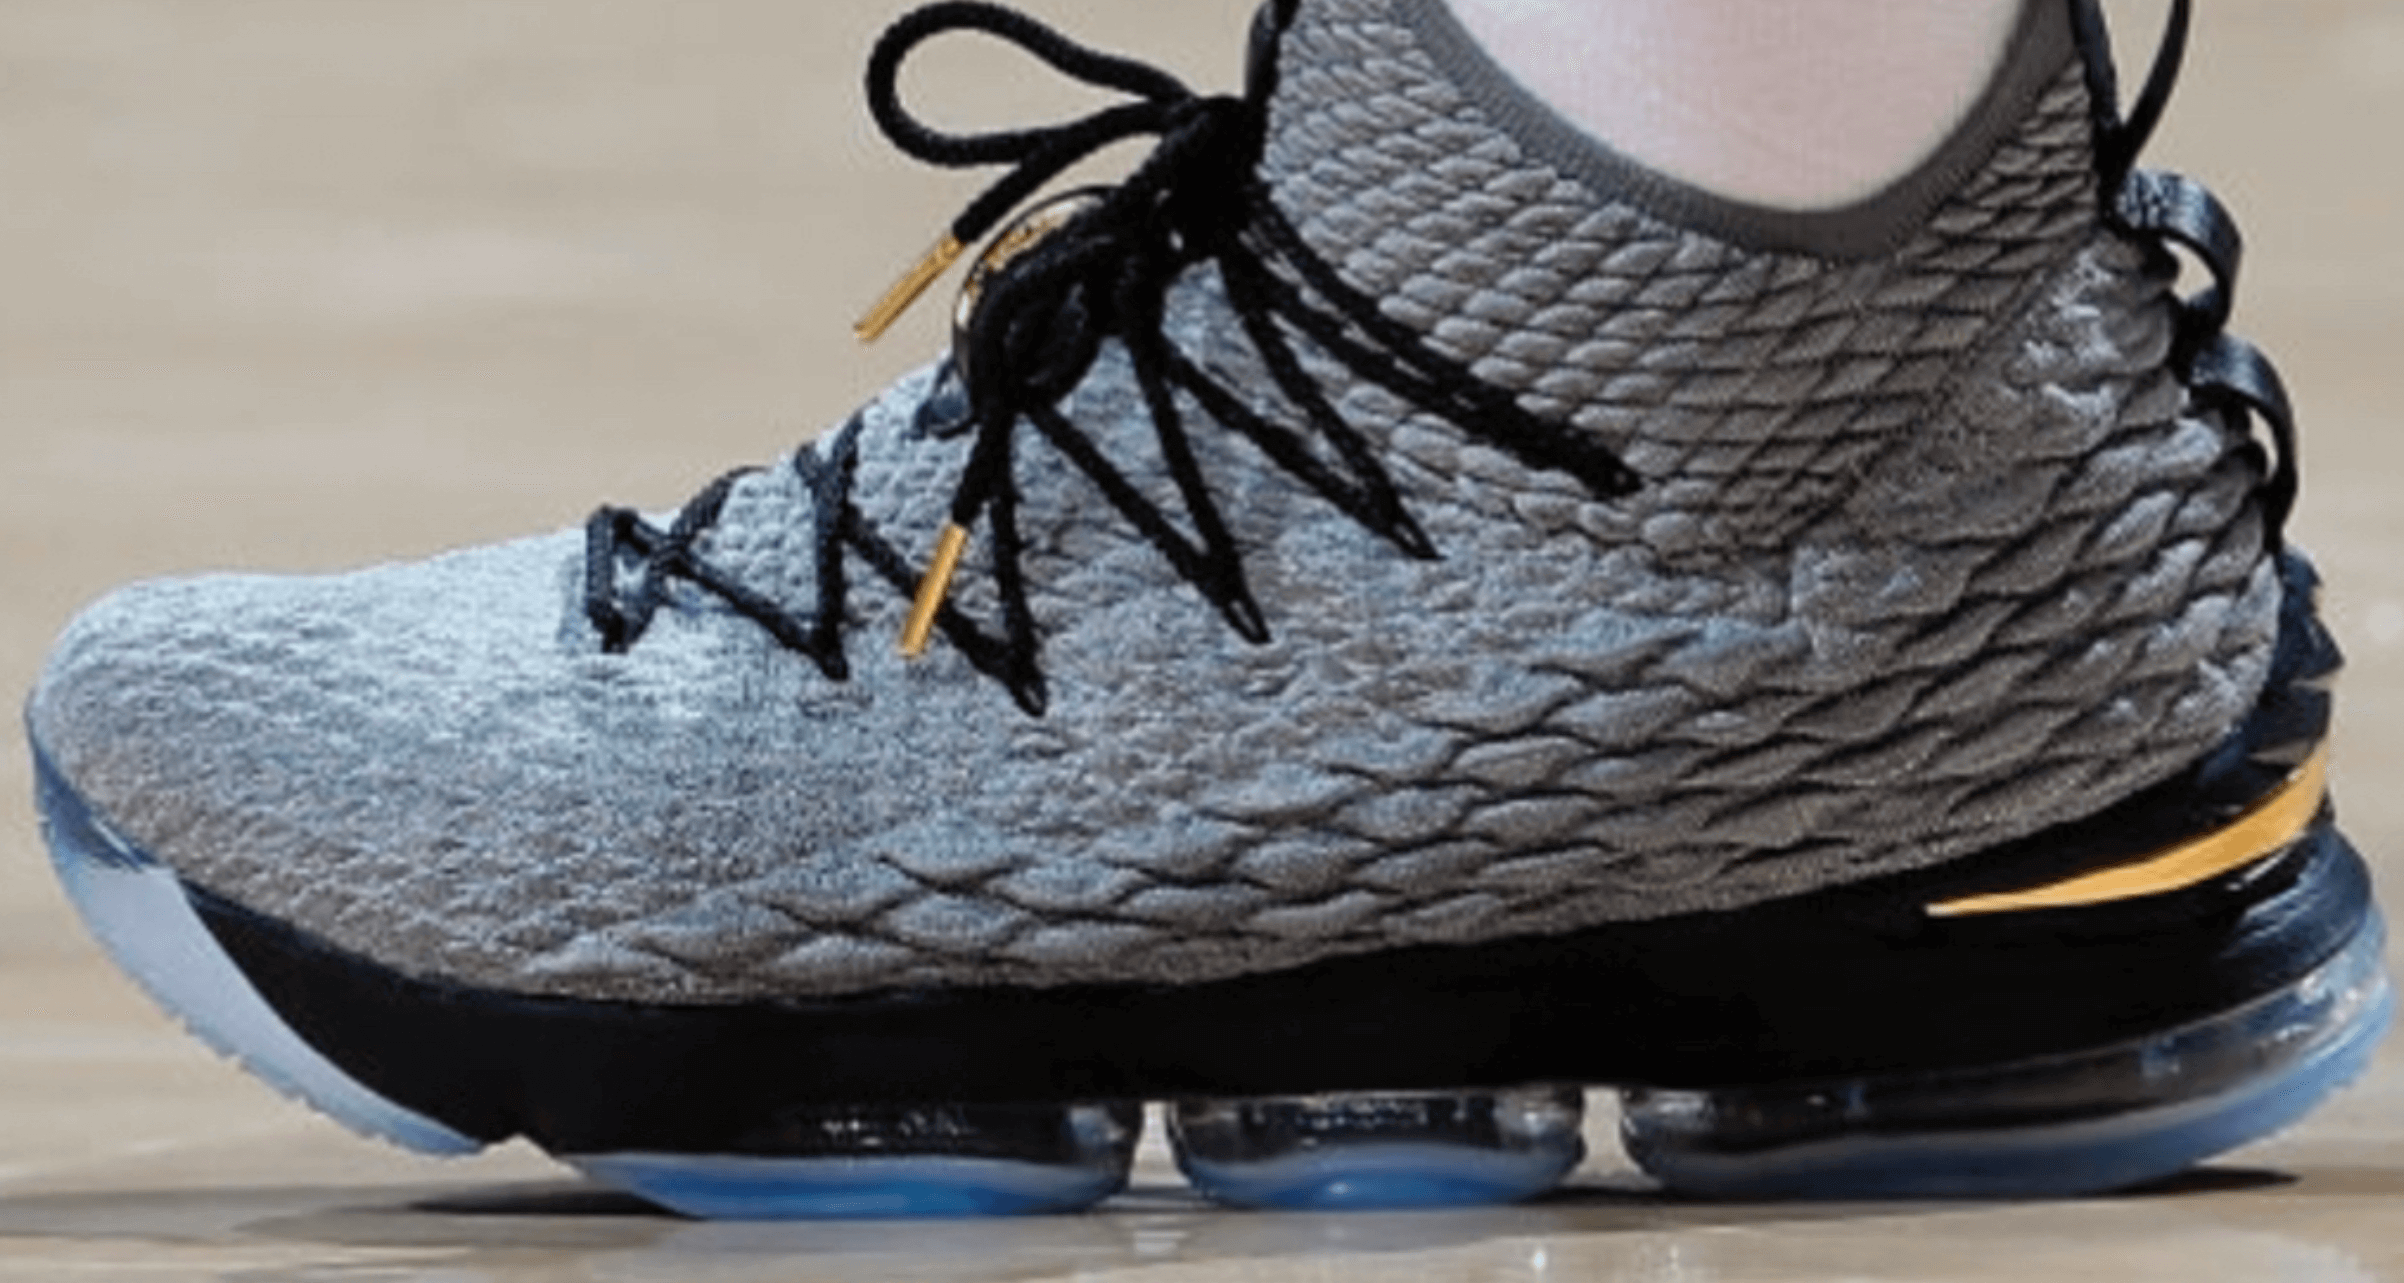 Nike Updates King James LeBron 15 Game Shoe  Nice Kicks